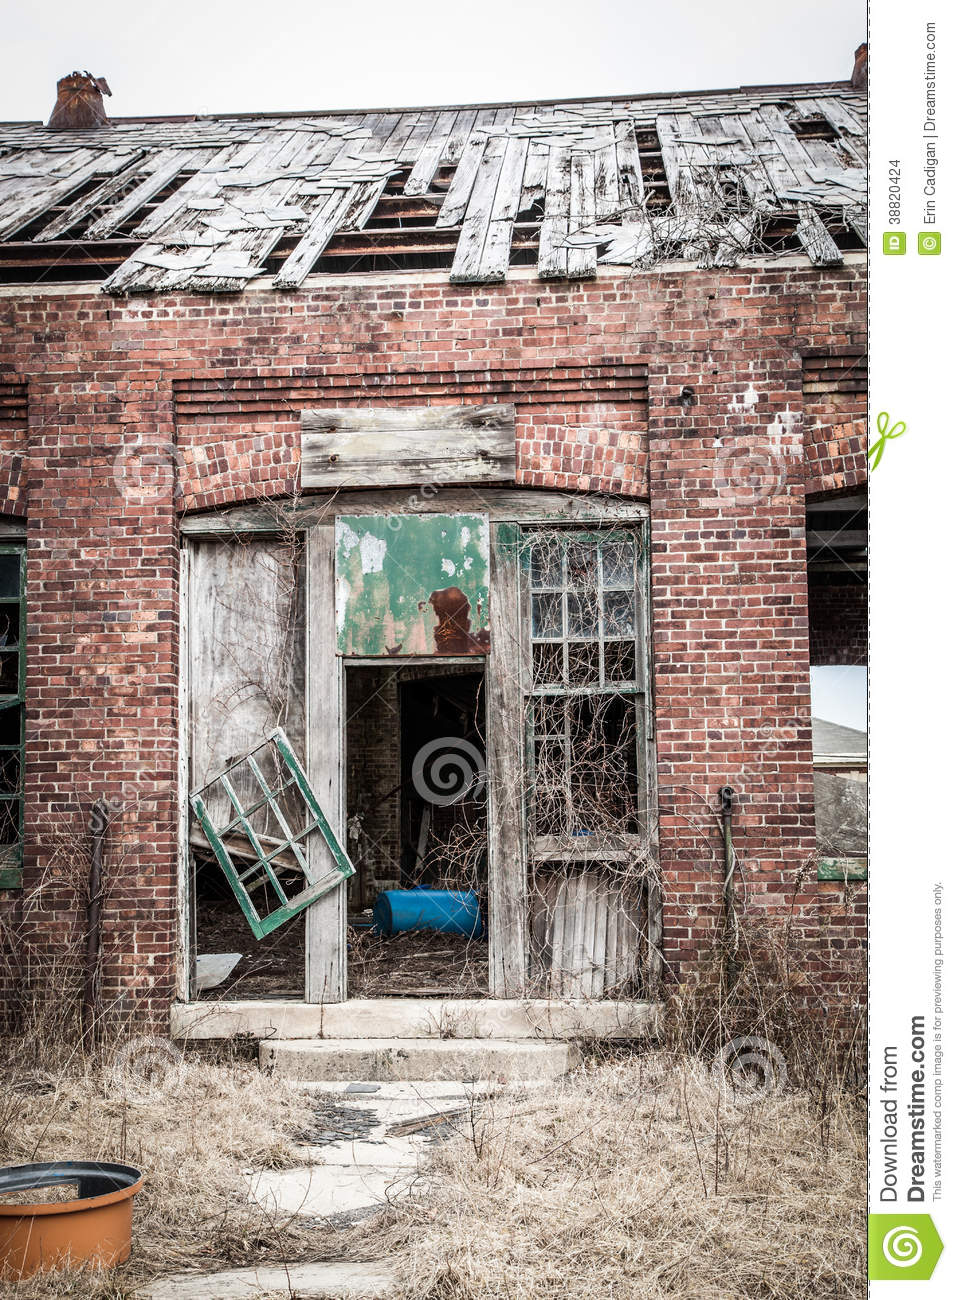 Building Falling Over : Old building falling apart stock photo image